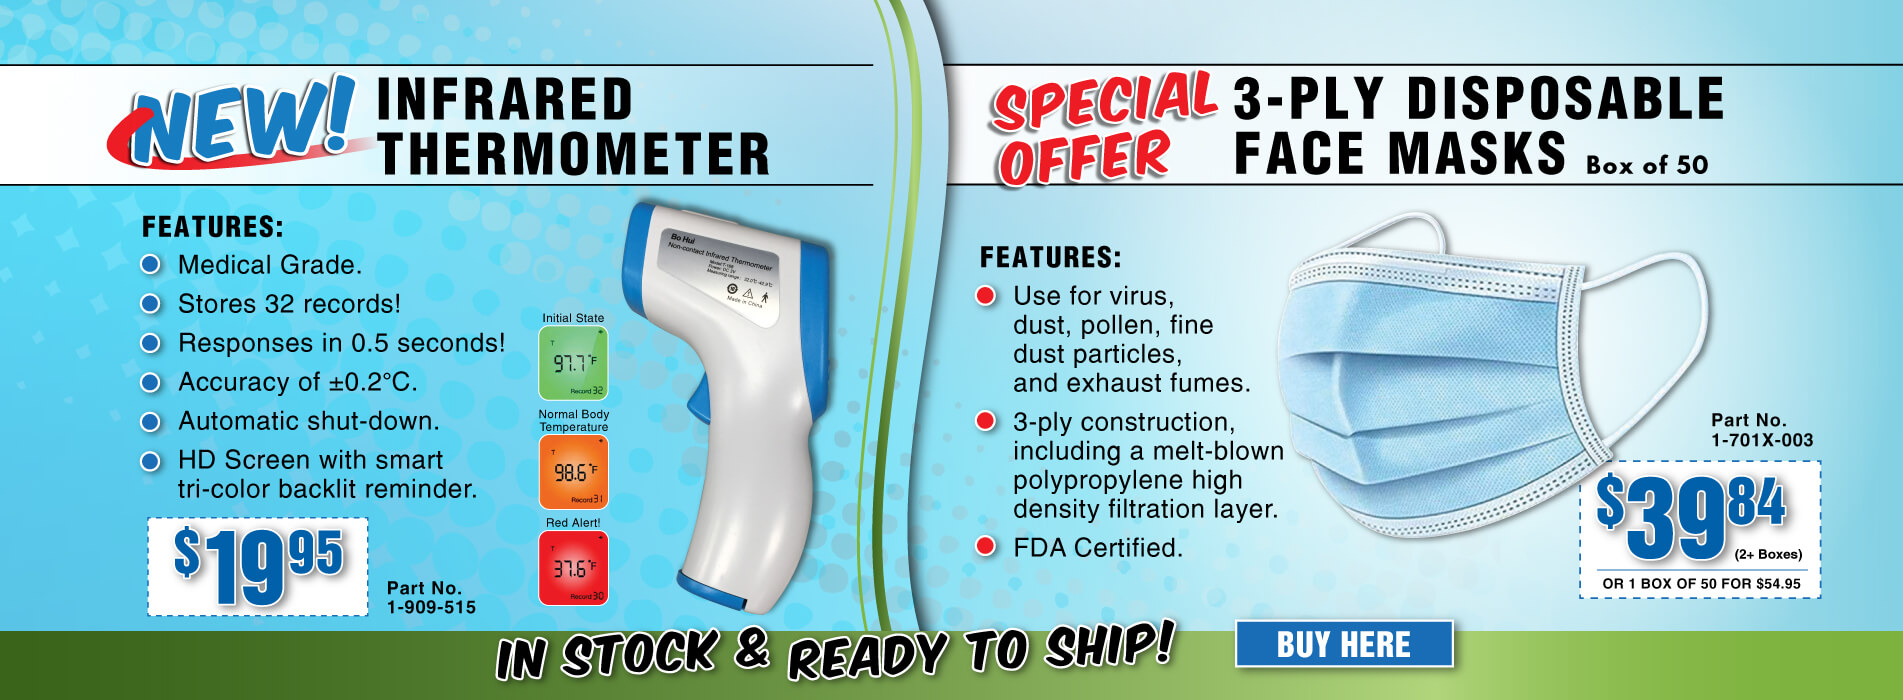 3-Ply Disposable Face Masks - Non-Contact Infrared Thermometer